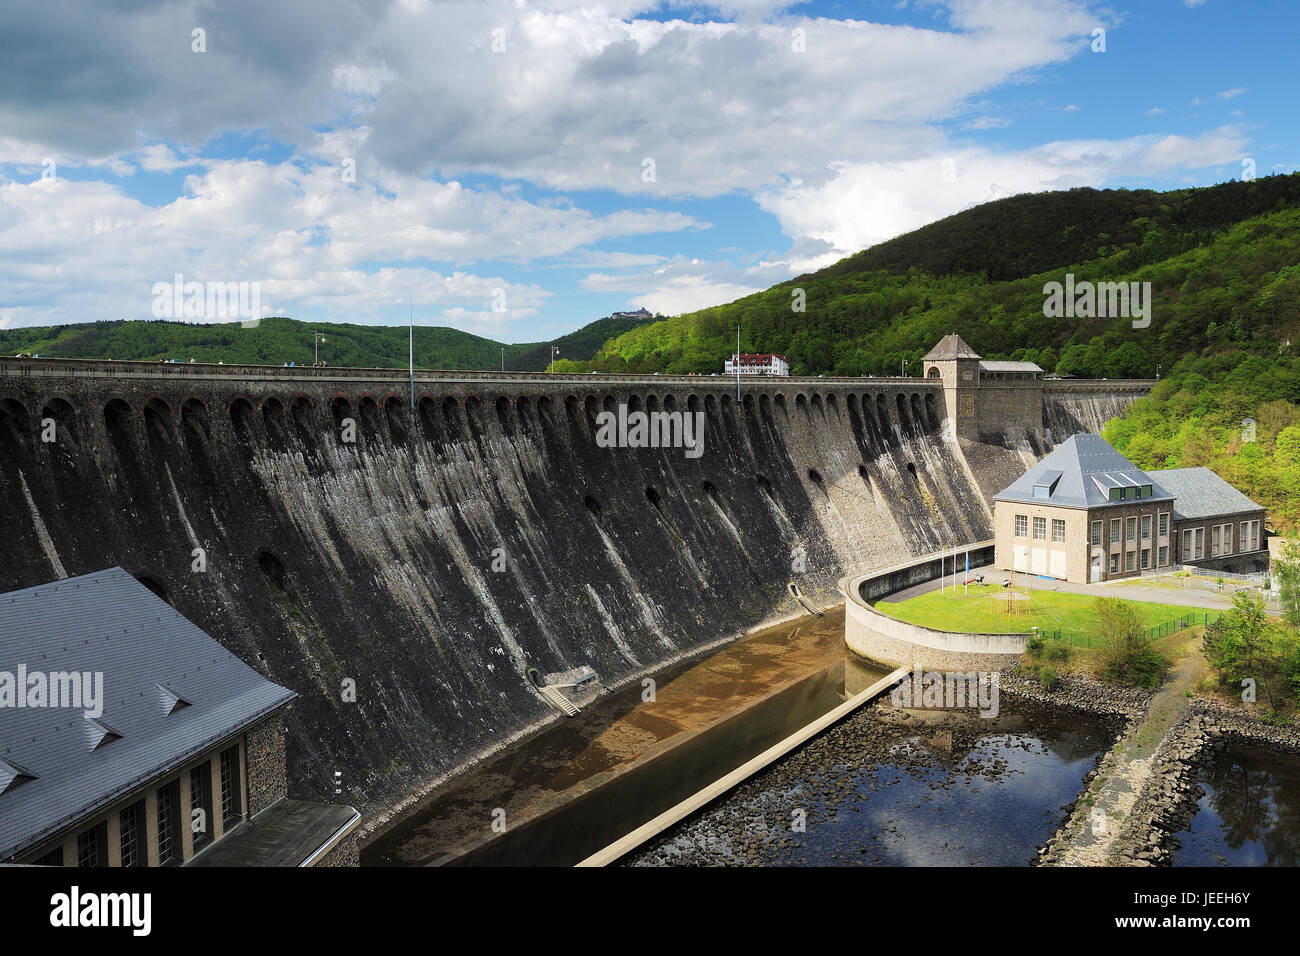 Dam of the Edersee - Stock Image